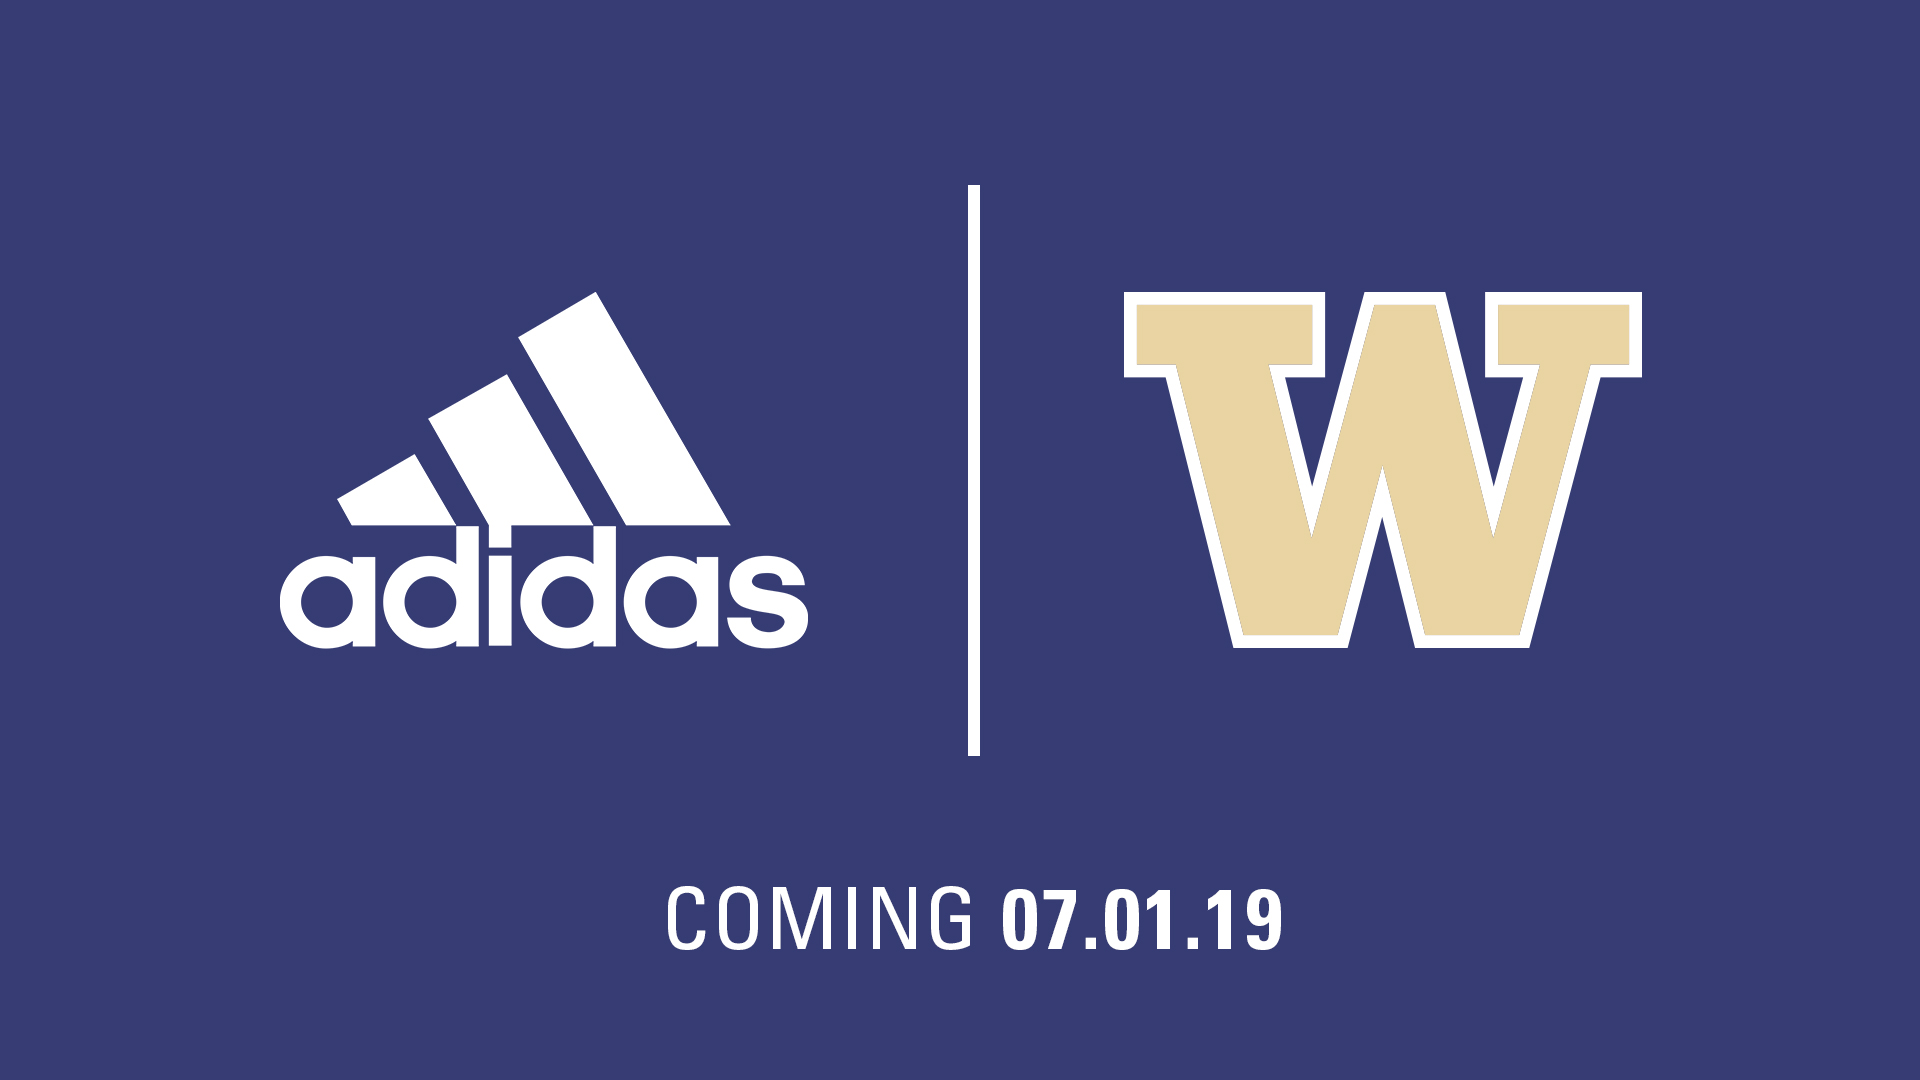 University Of Washington Agrees To Terms On 10 Year Partnership With